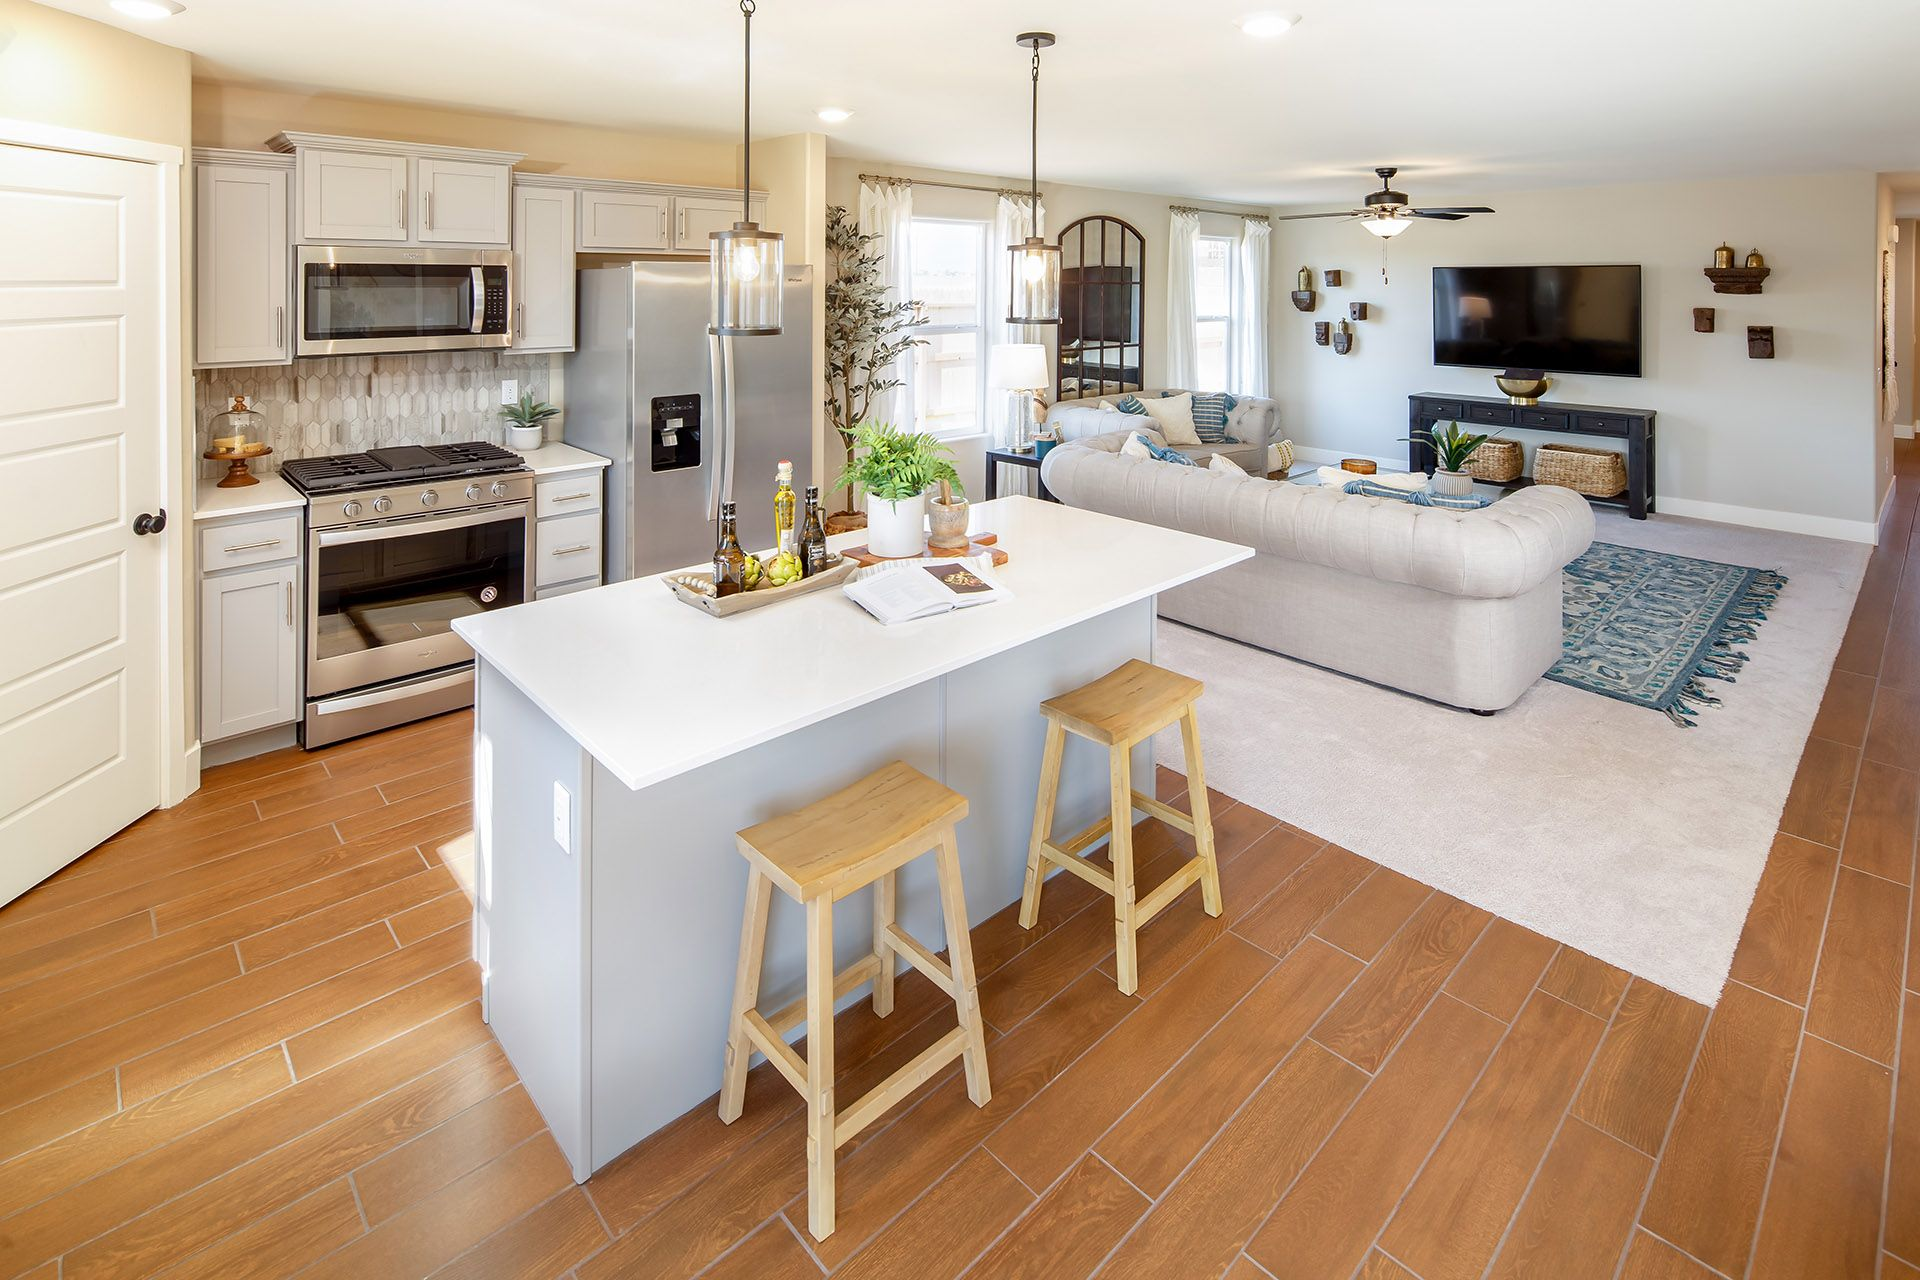 Living Area featured in the Oriole By D.R. Horton in Bakersfield, CA